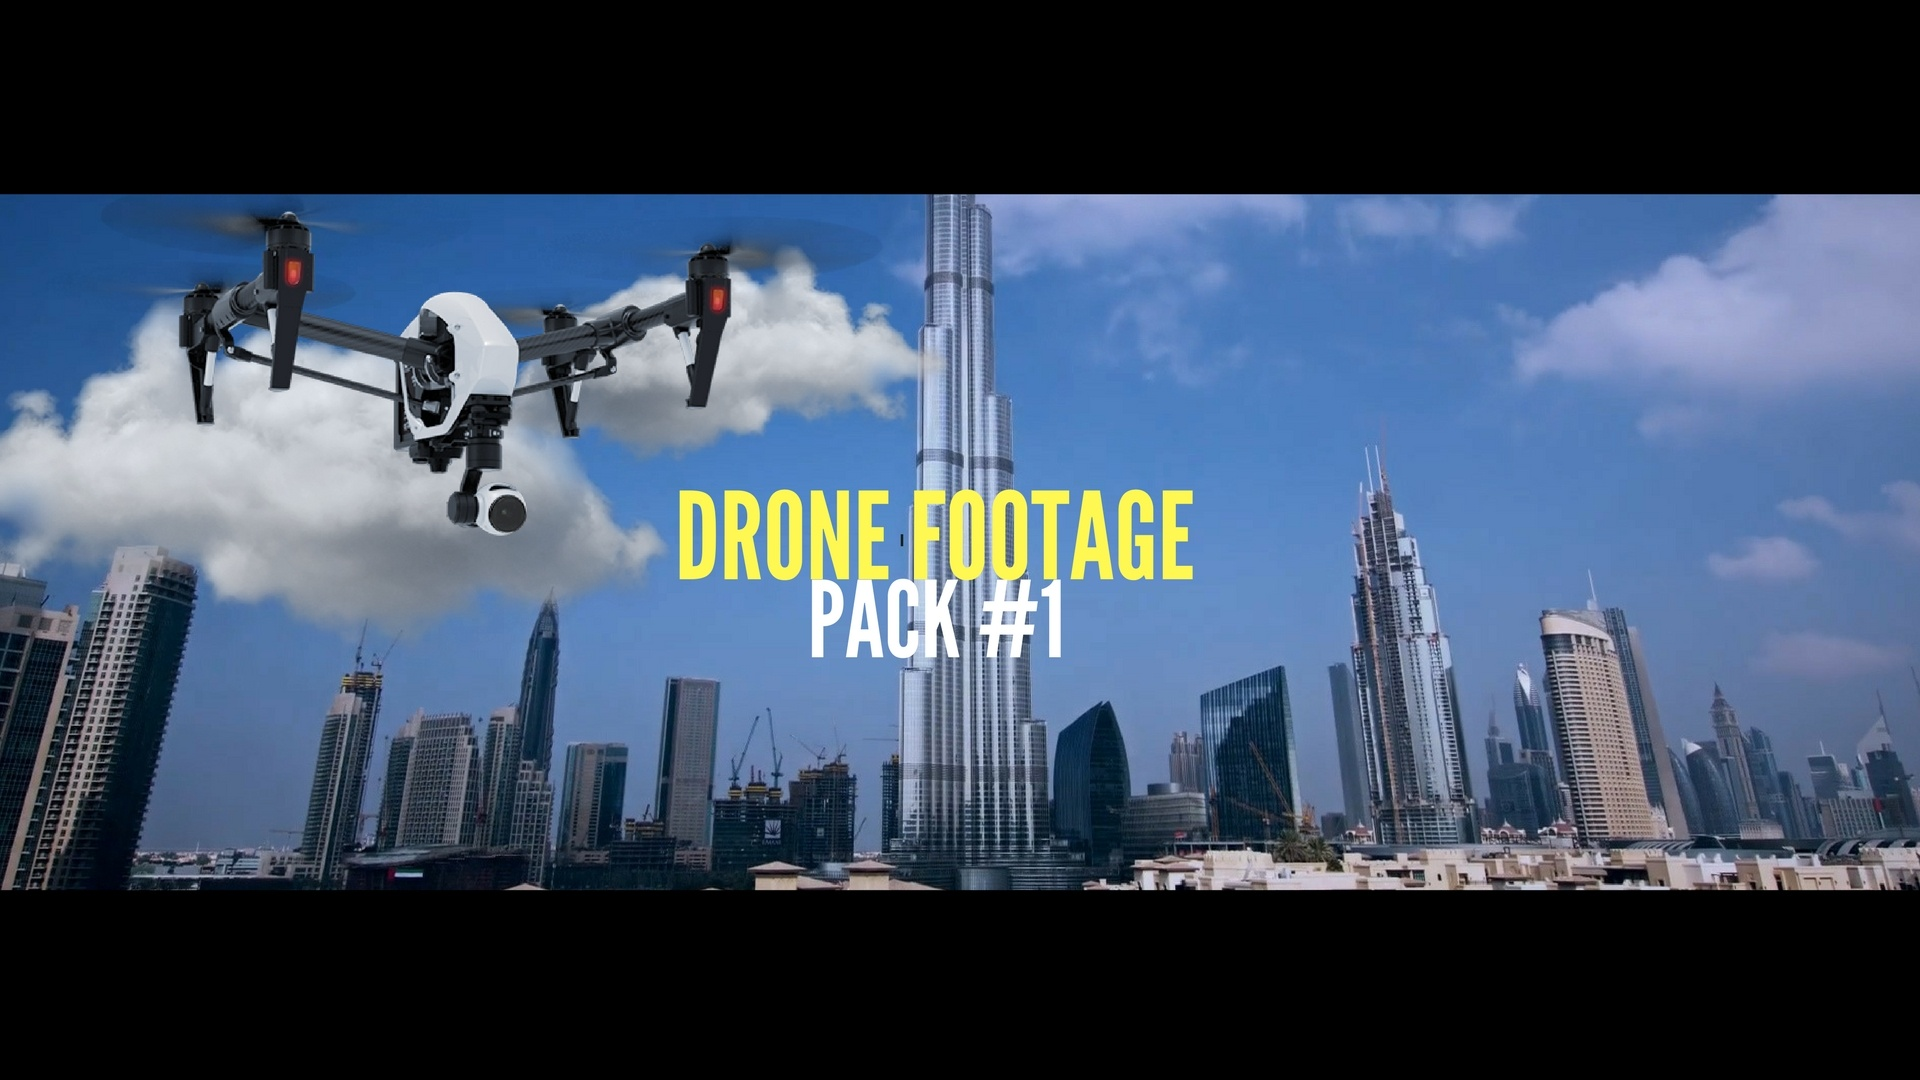 Drone Footage Pack #1